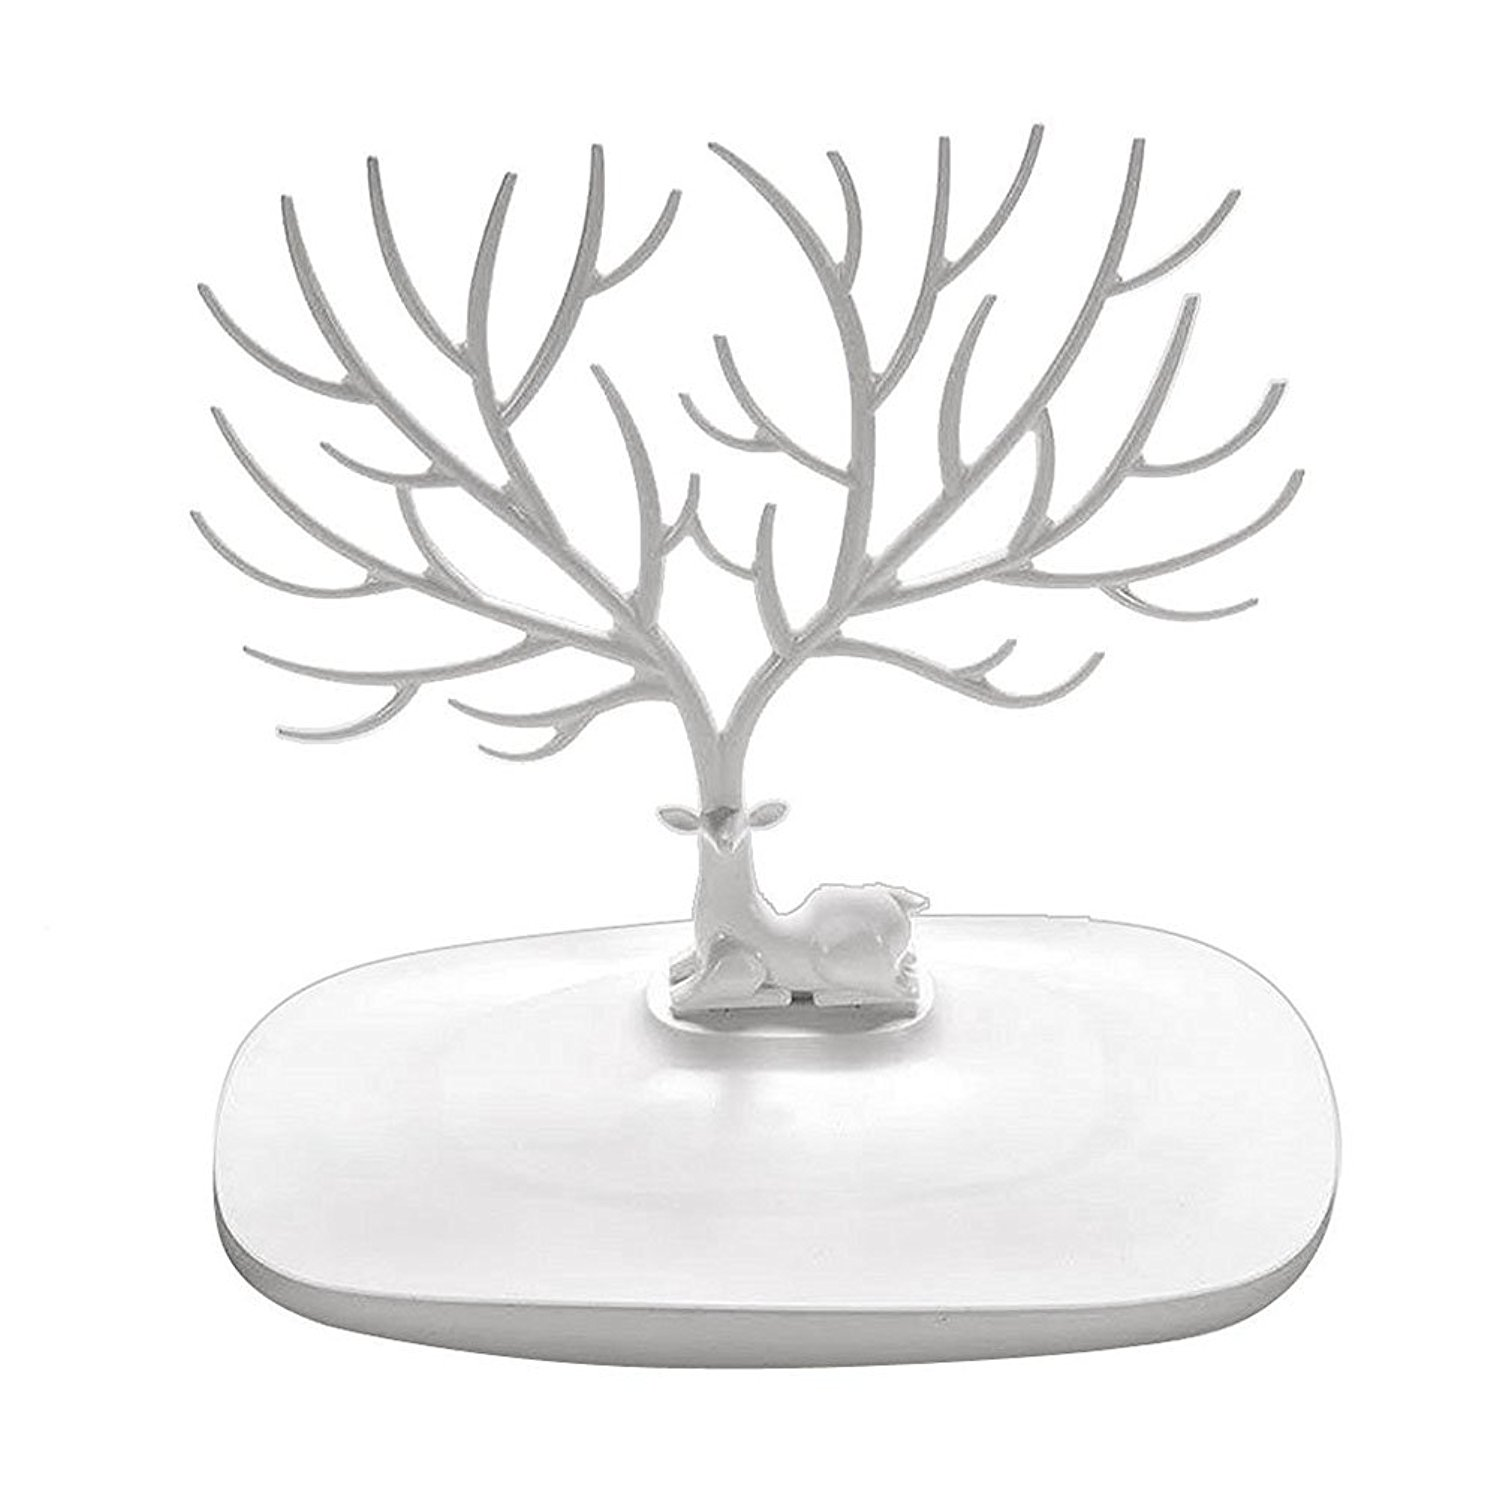 ROSENICE Hanging Jewelry Organizer Stand Tree Earring Necklace Holder Tray (White Deer Antler)